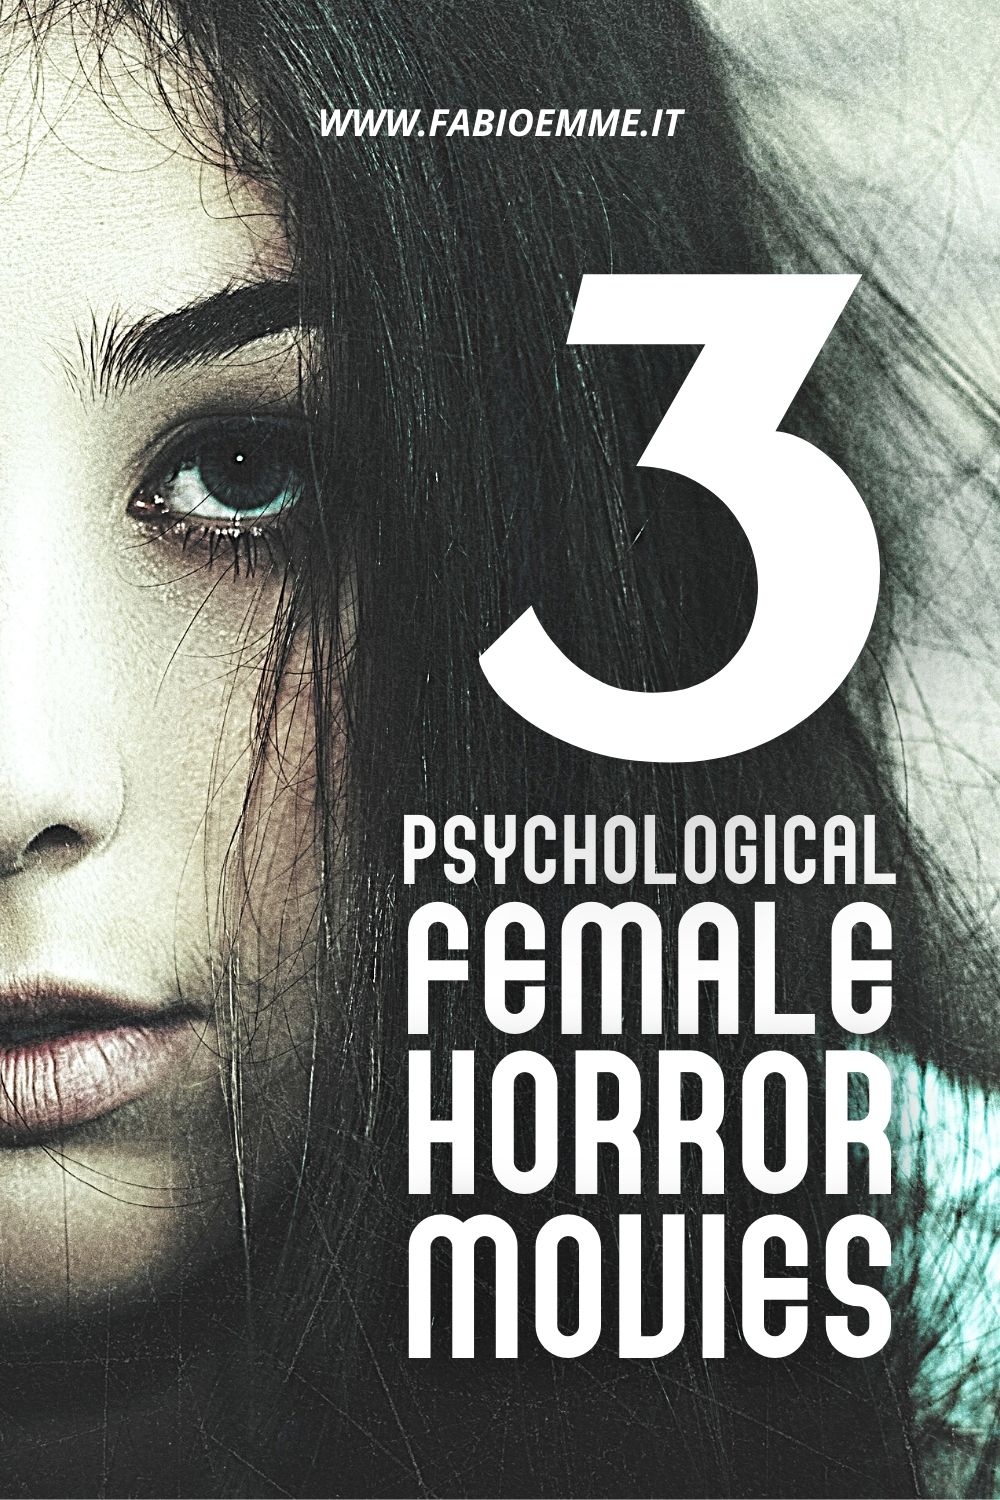 They are not only poor female victims in the horror movies. They can be pure horror themselves. But how far female psychology can go? #MOVIES